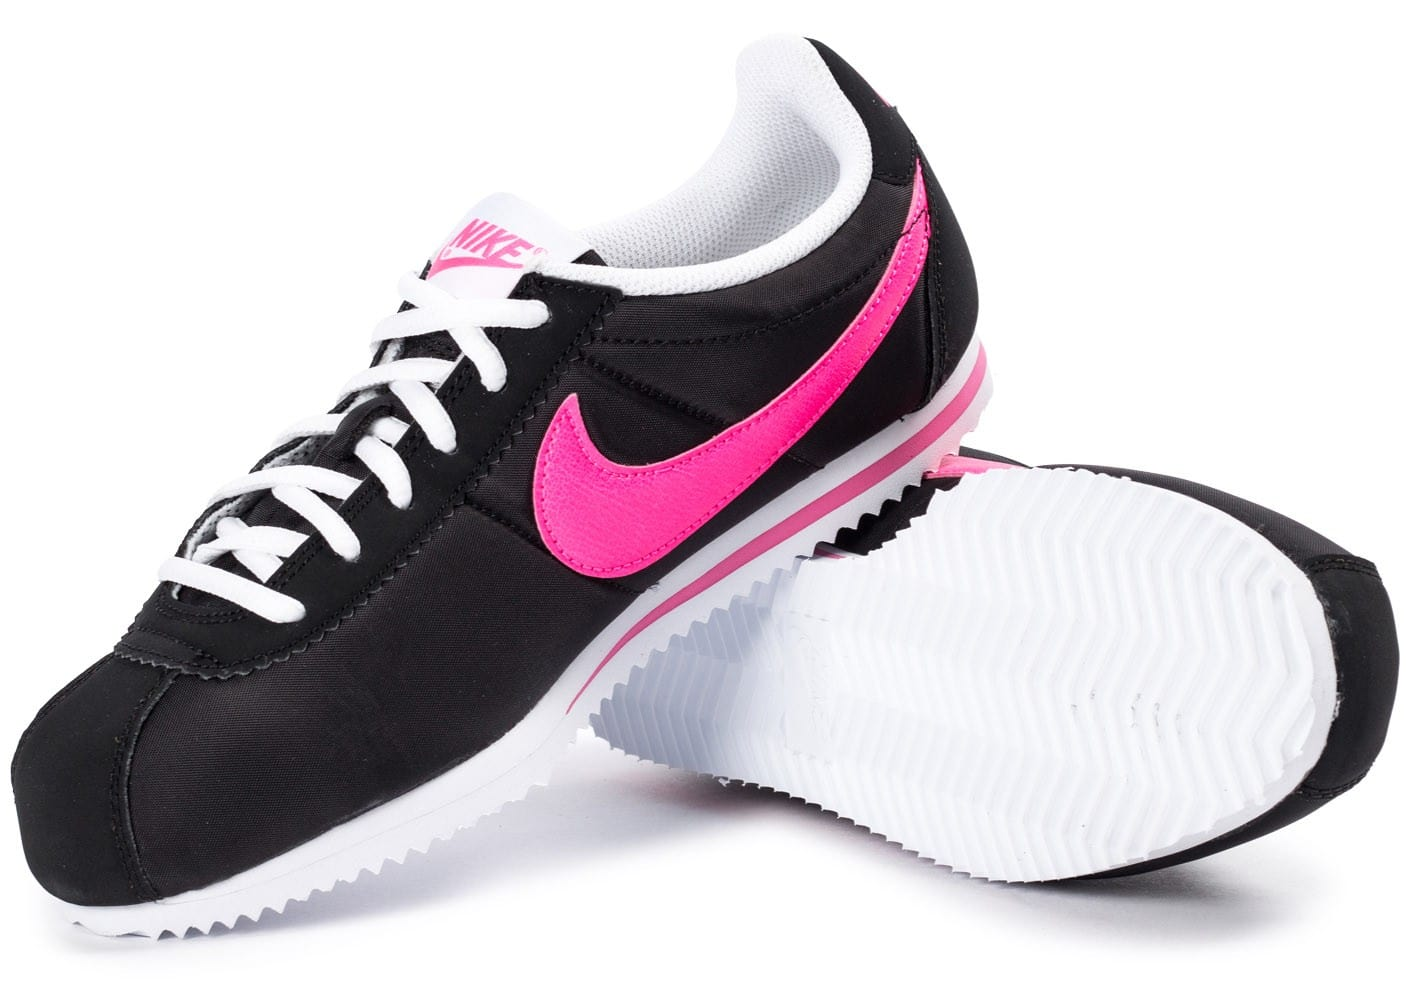 nike cortez nylon junior noire et rose chaussures black friday chausport. Black Bedroom Furniture Sets. Home Design Ideas